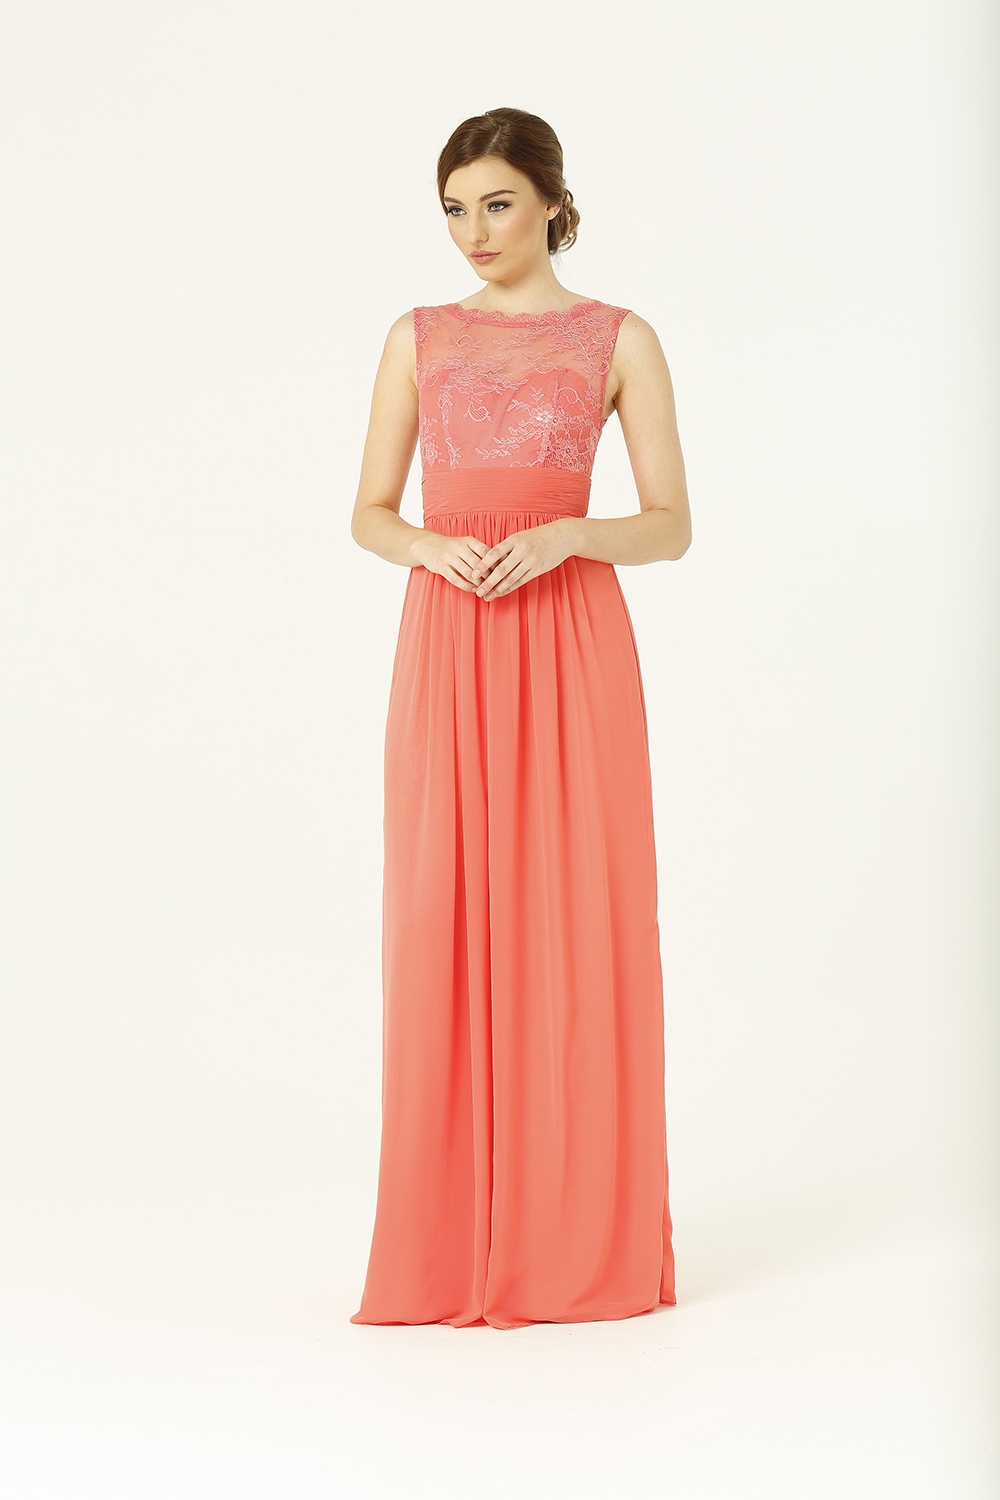 PO34 Charlotte Bridesmaids Dress - end of dye lot coral